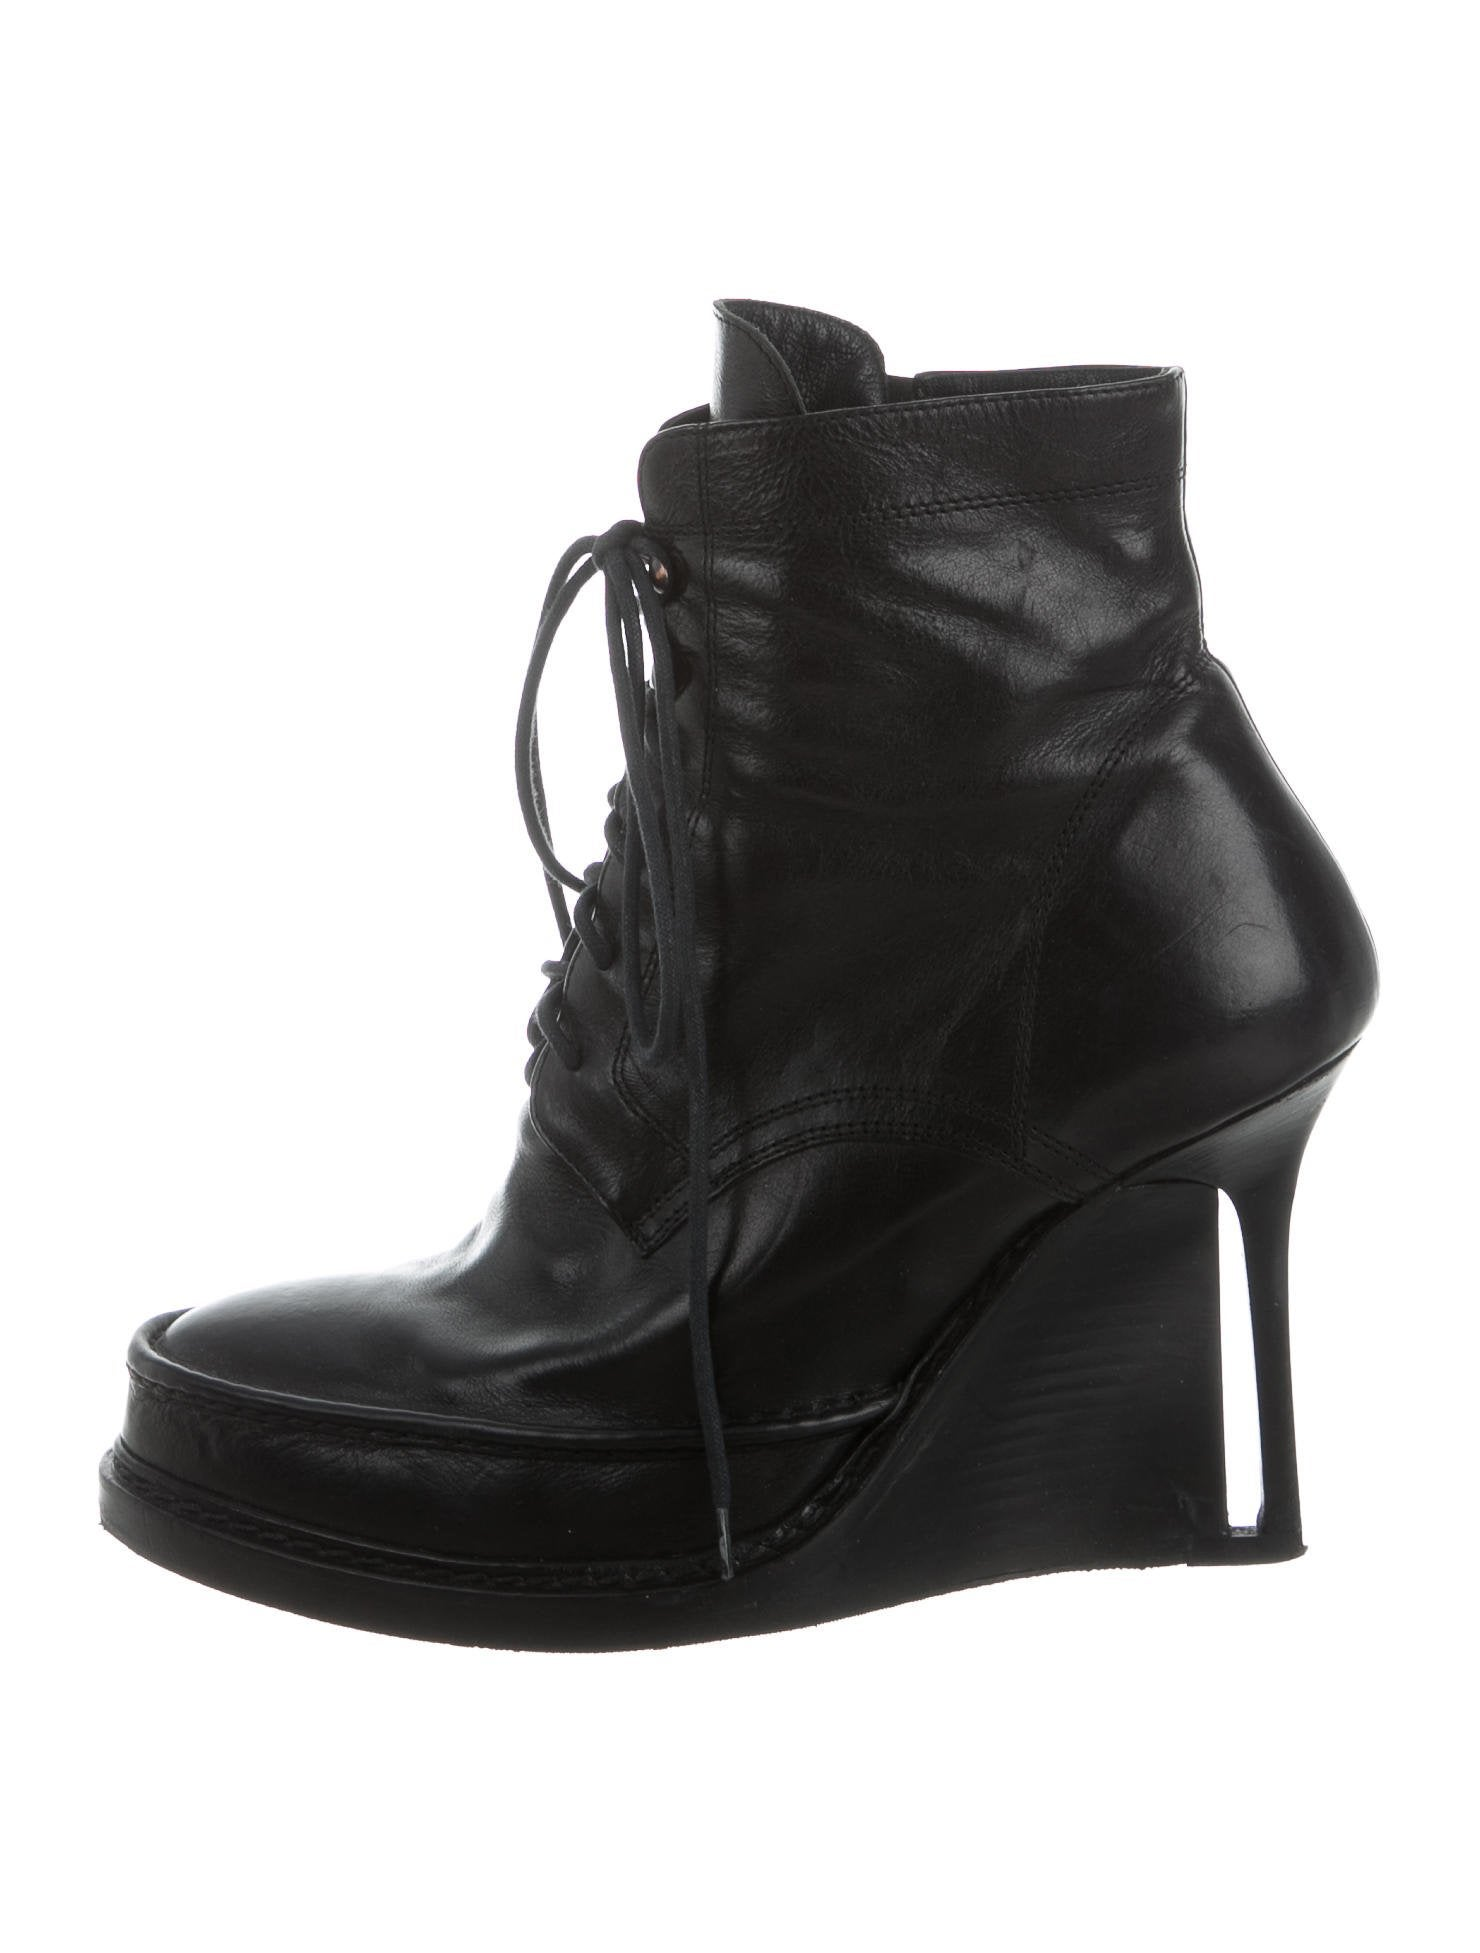 Shop ankle boots online at kumau.ml, find the latest styles of cheap flat, wedge and lace up ankle boots for women at discount price.